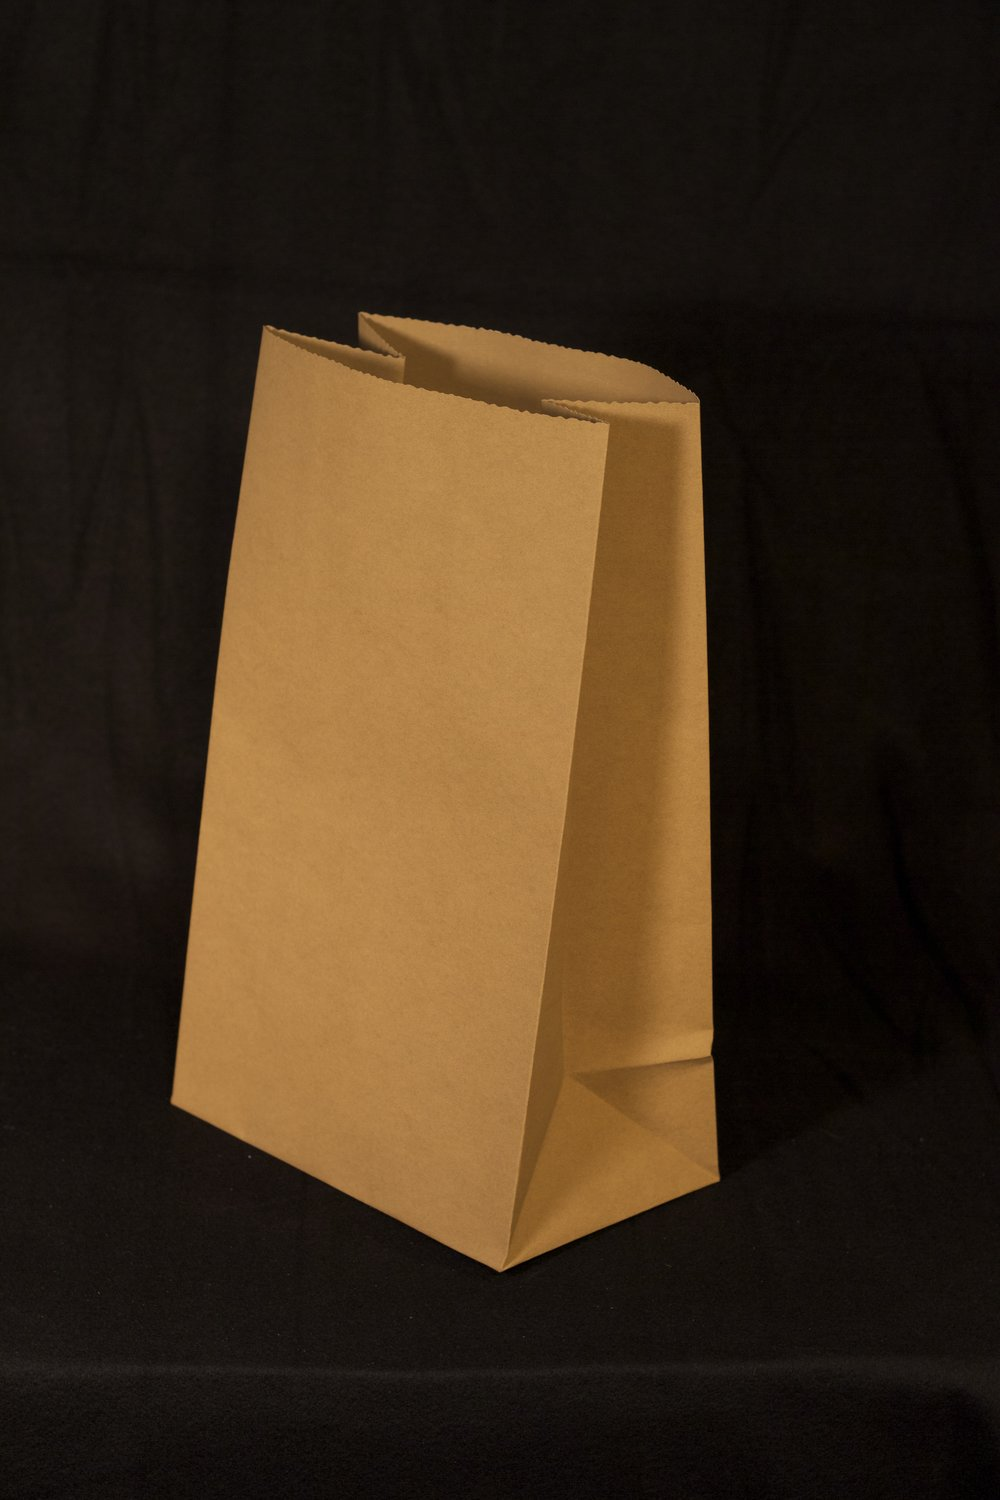 SILENT BAKERY BAG7 WIDE X 4 1/2 DEEP X 12 1/2 TALL